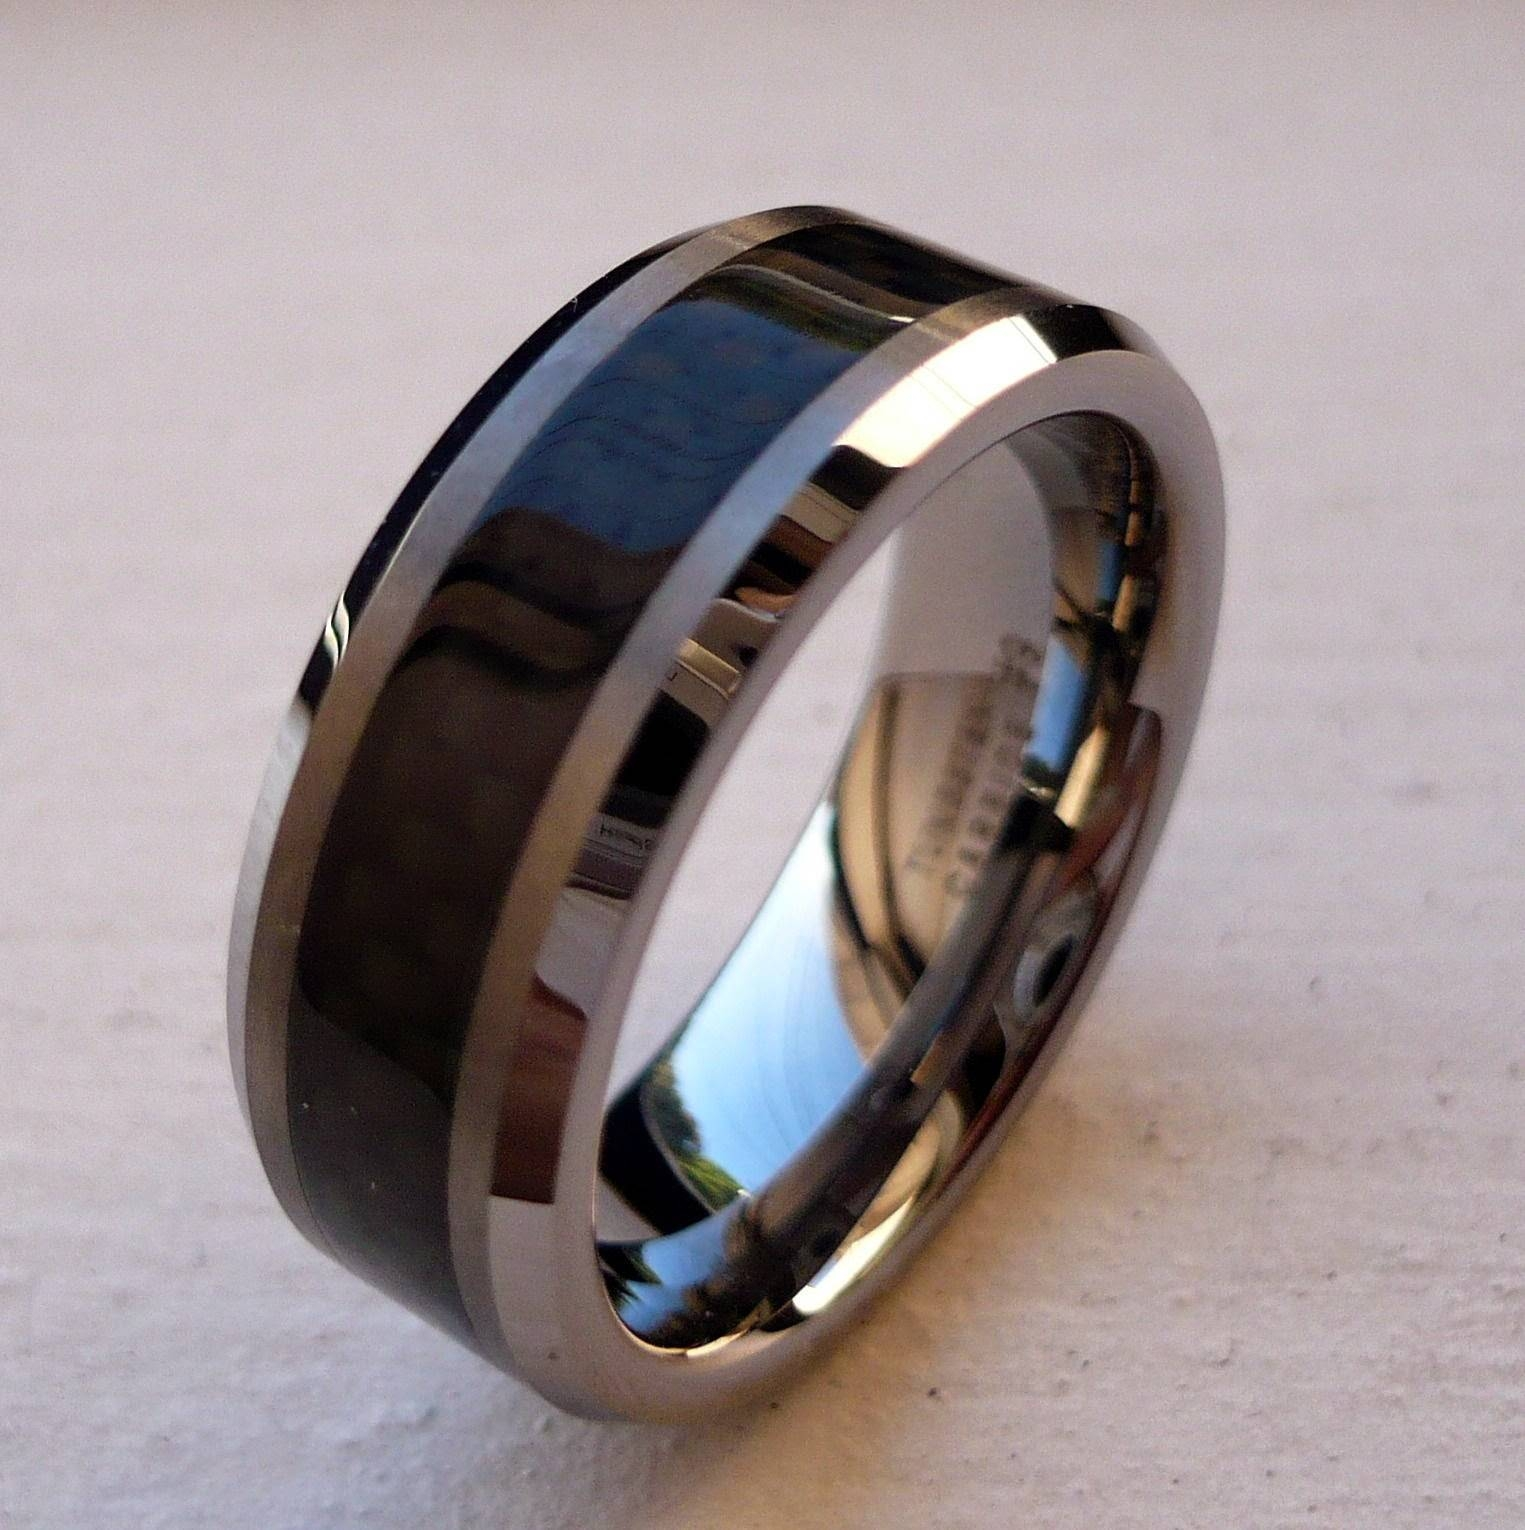 Some Designs Of Black Tungsten Wedding Bands | Wedding Ideas Intended For Matte Black Men's Wedding Bands (Gallery 15 of 15)